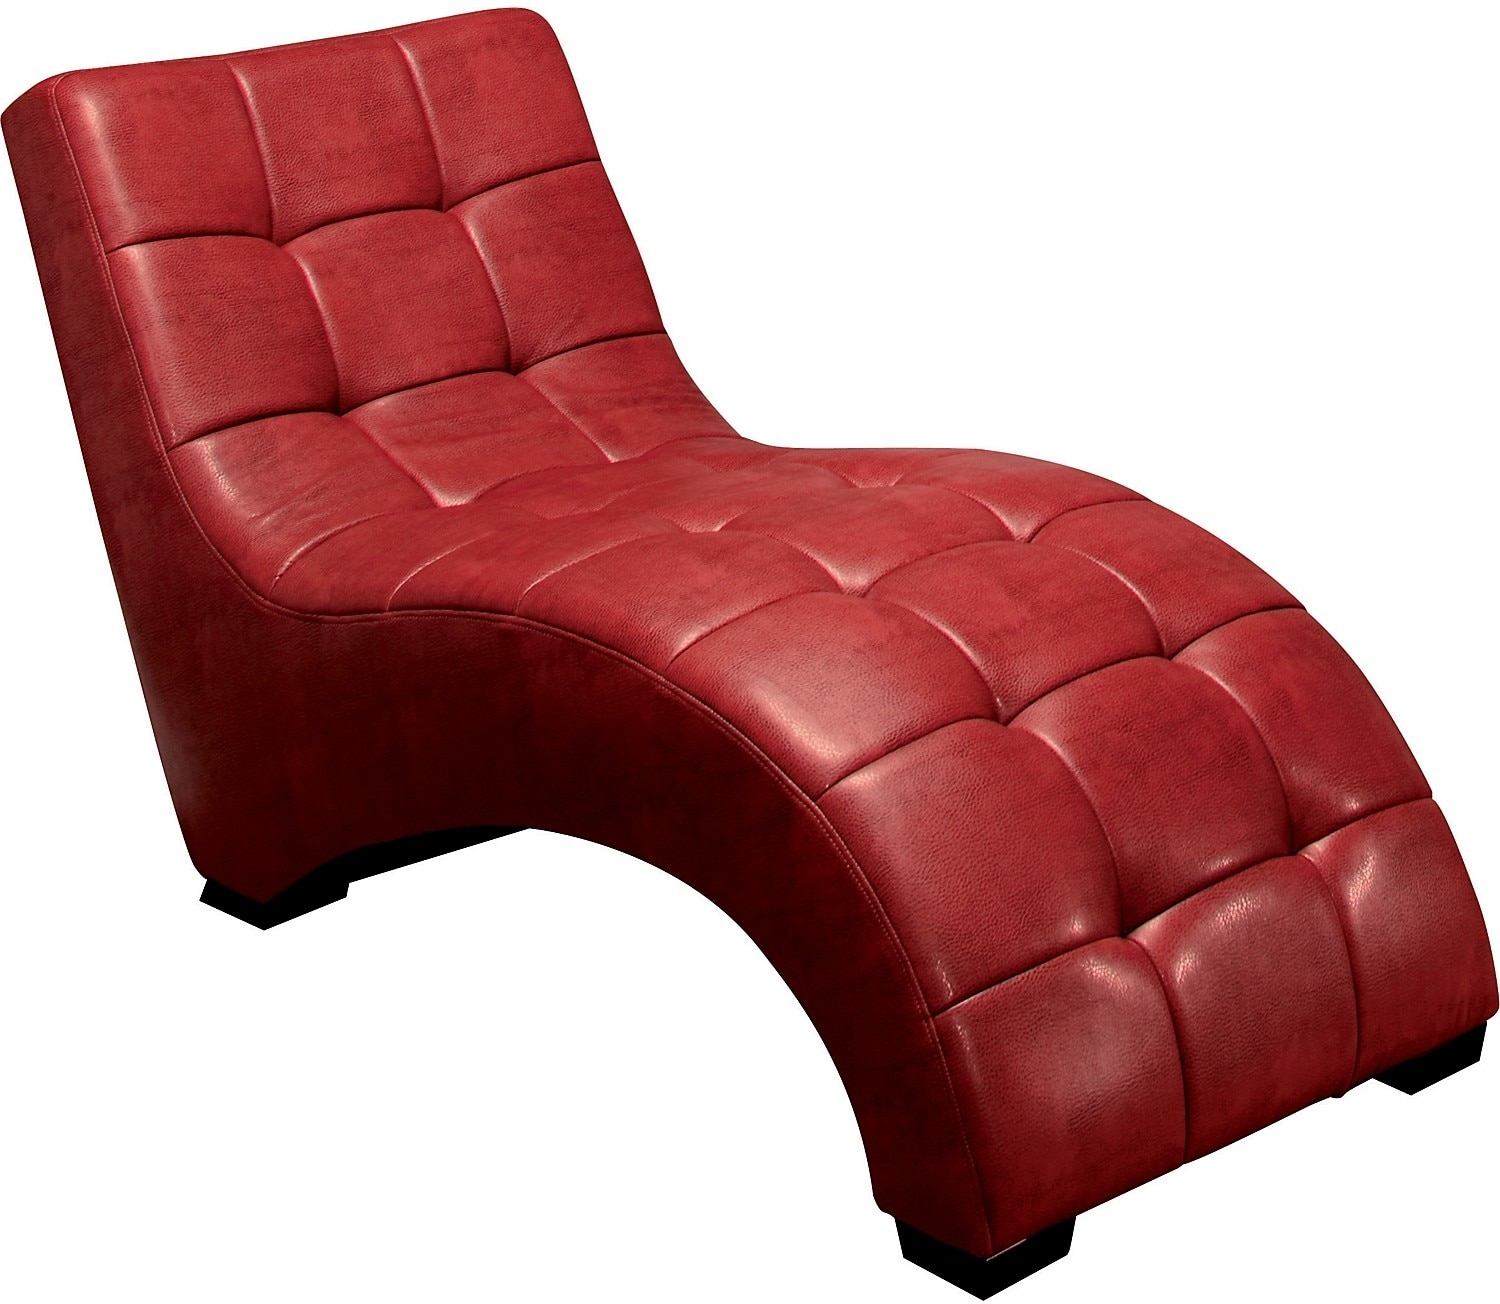 icon curved red chaise  the brick - hover to zoom